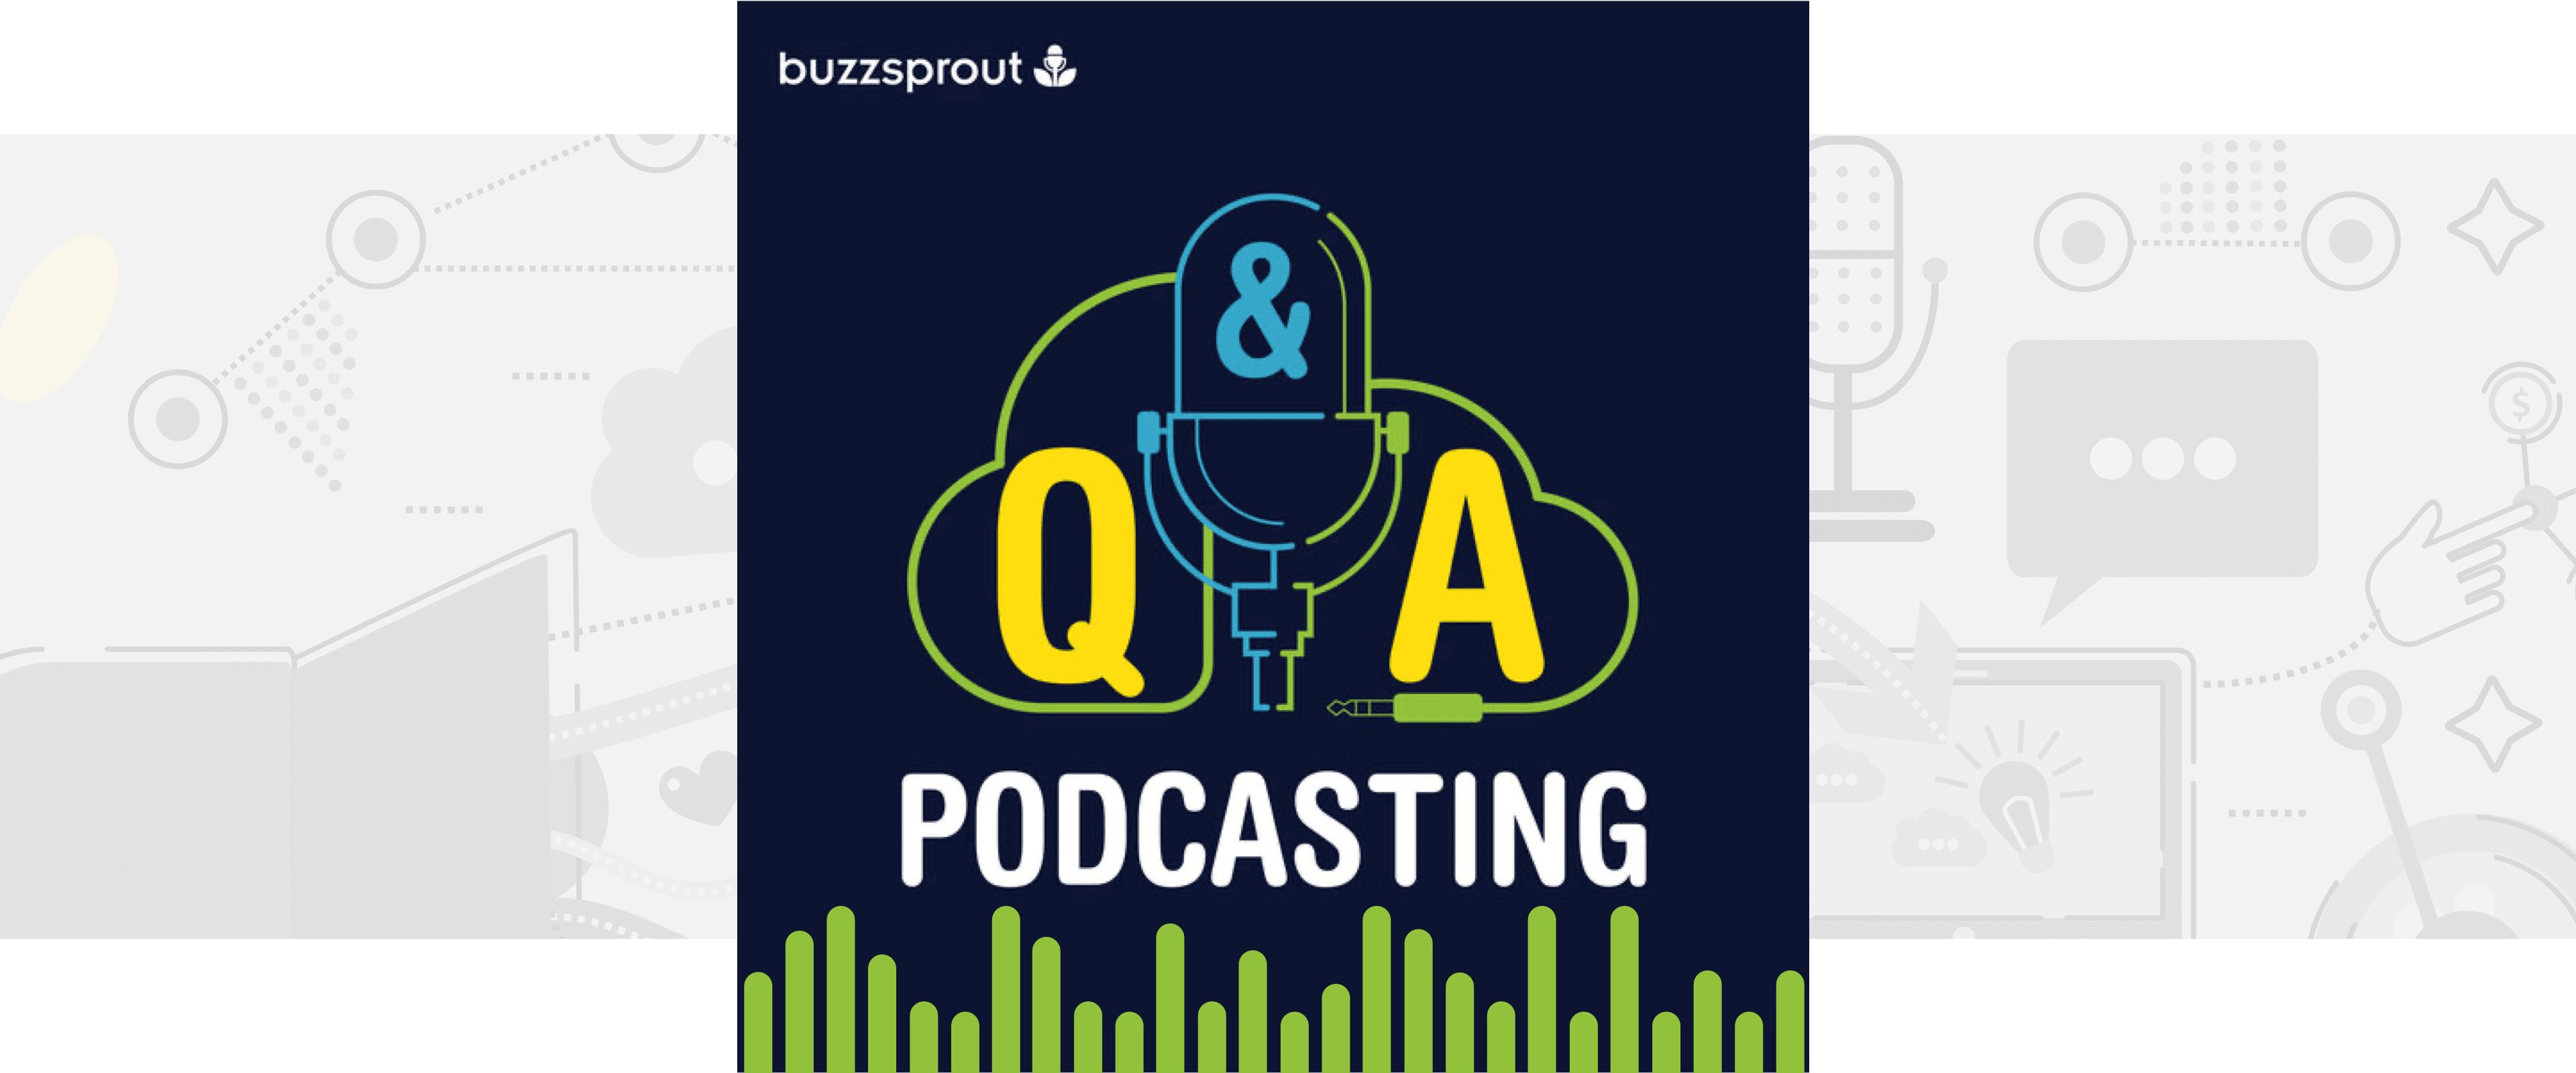 Podcasting Q&A podcast audiogram with green waveform